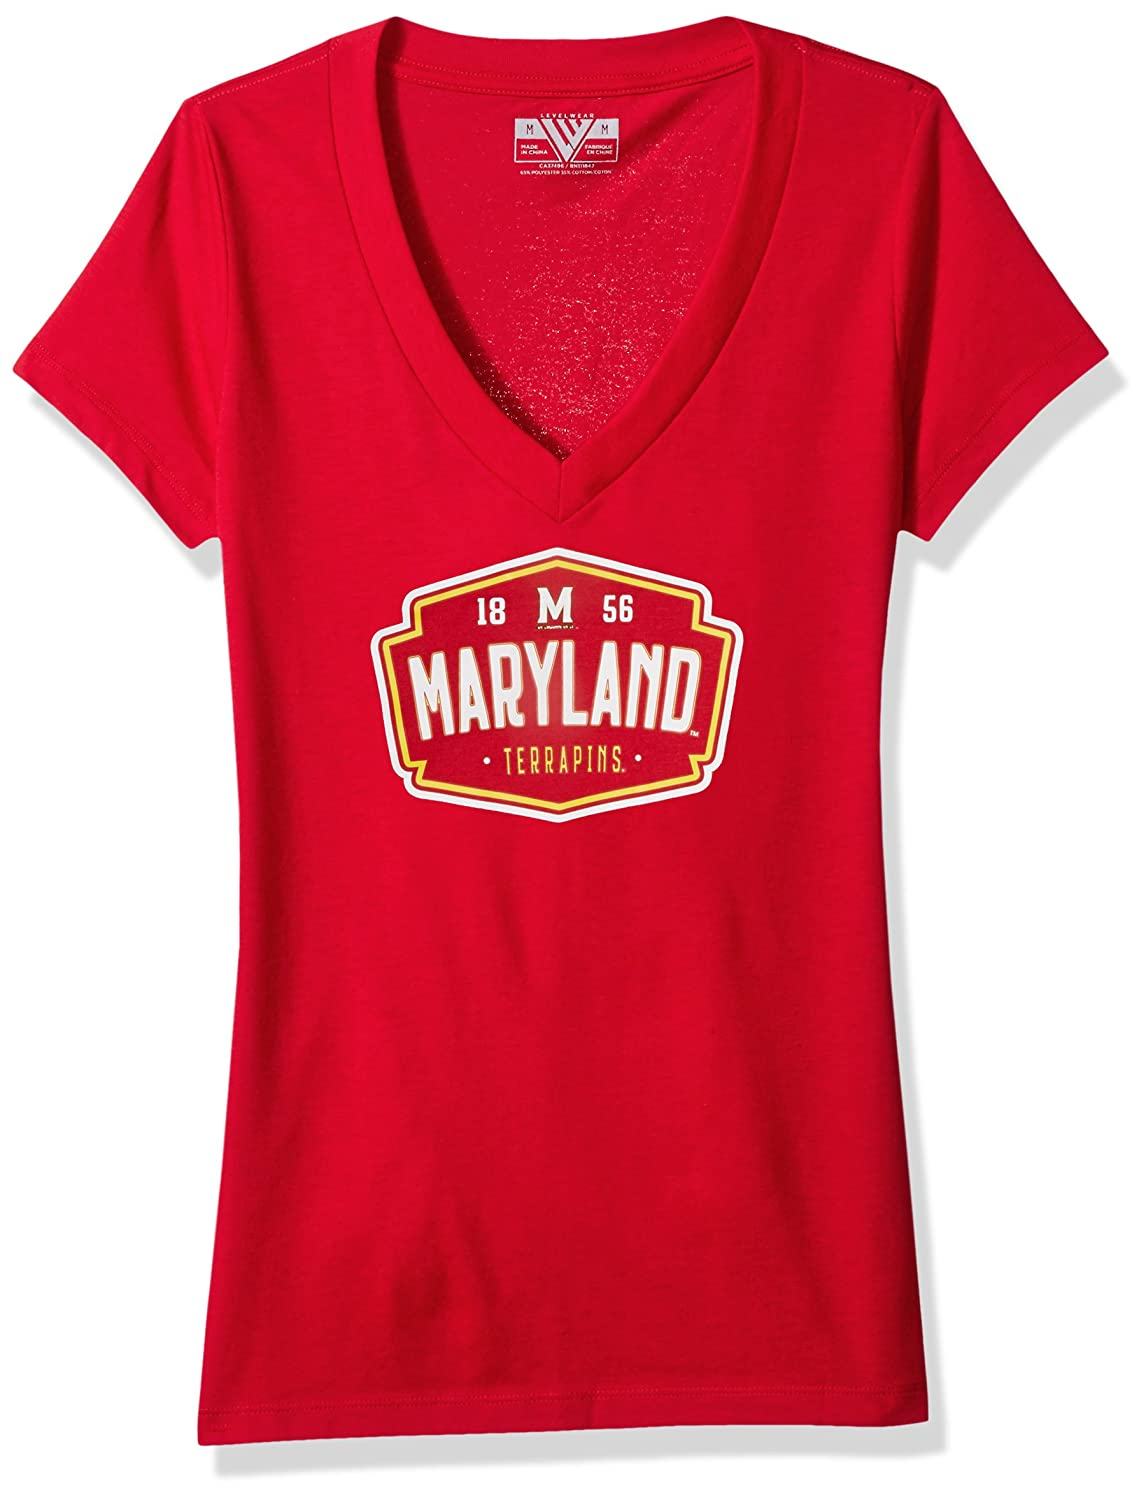 Levelwear LEY9R NCAA Maryland Terrapins Adult Women Entice Crested V-Neck Tee Solid Flame Red Large